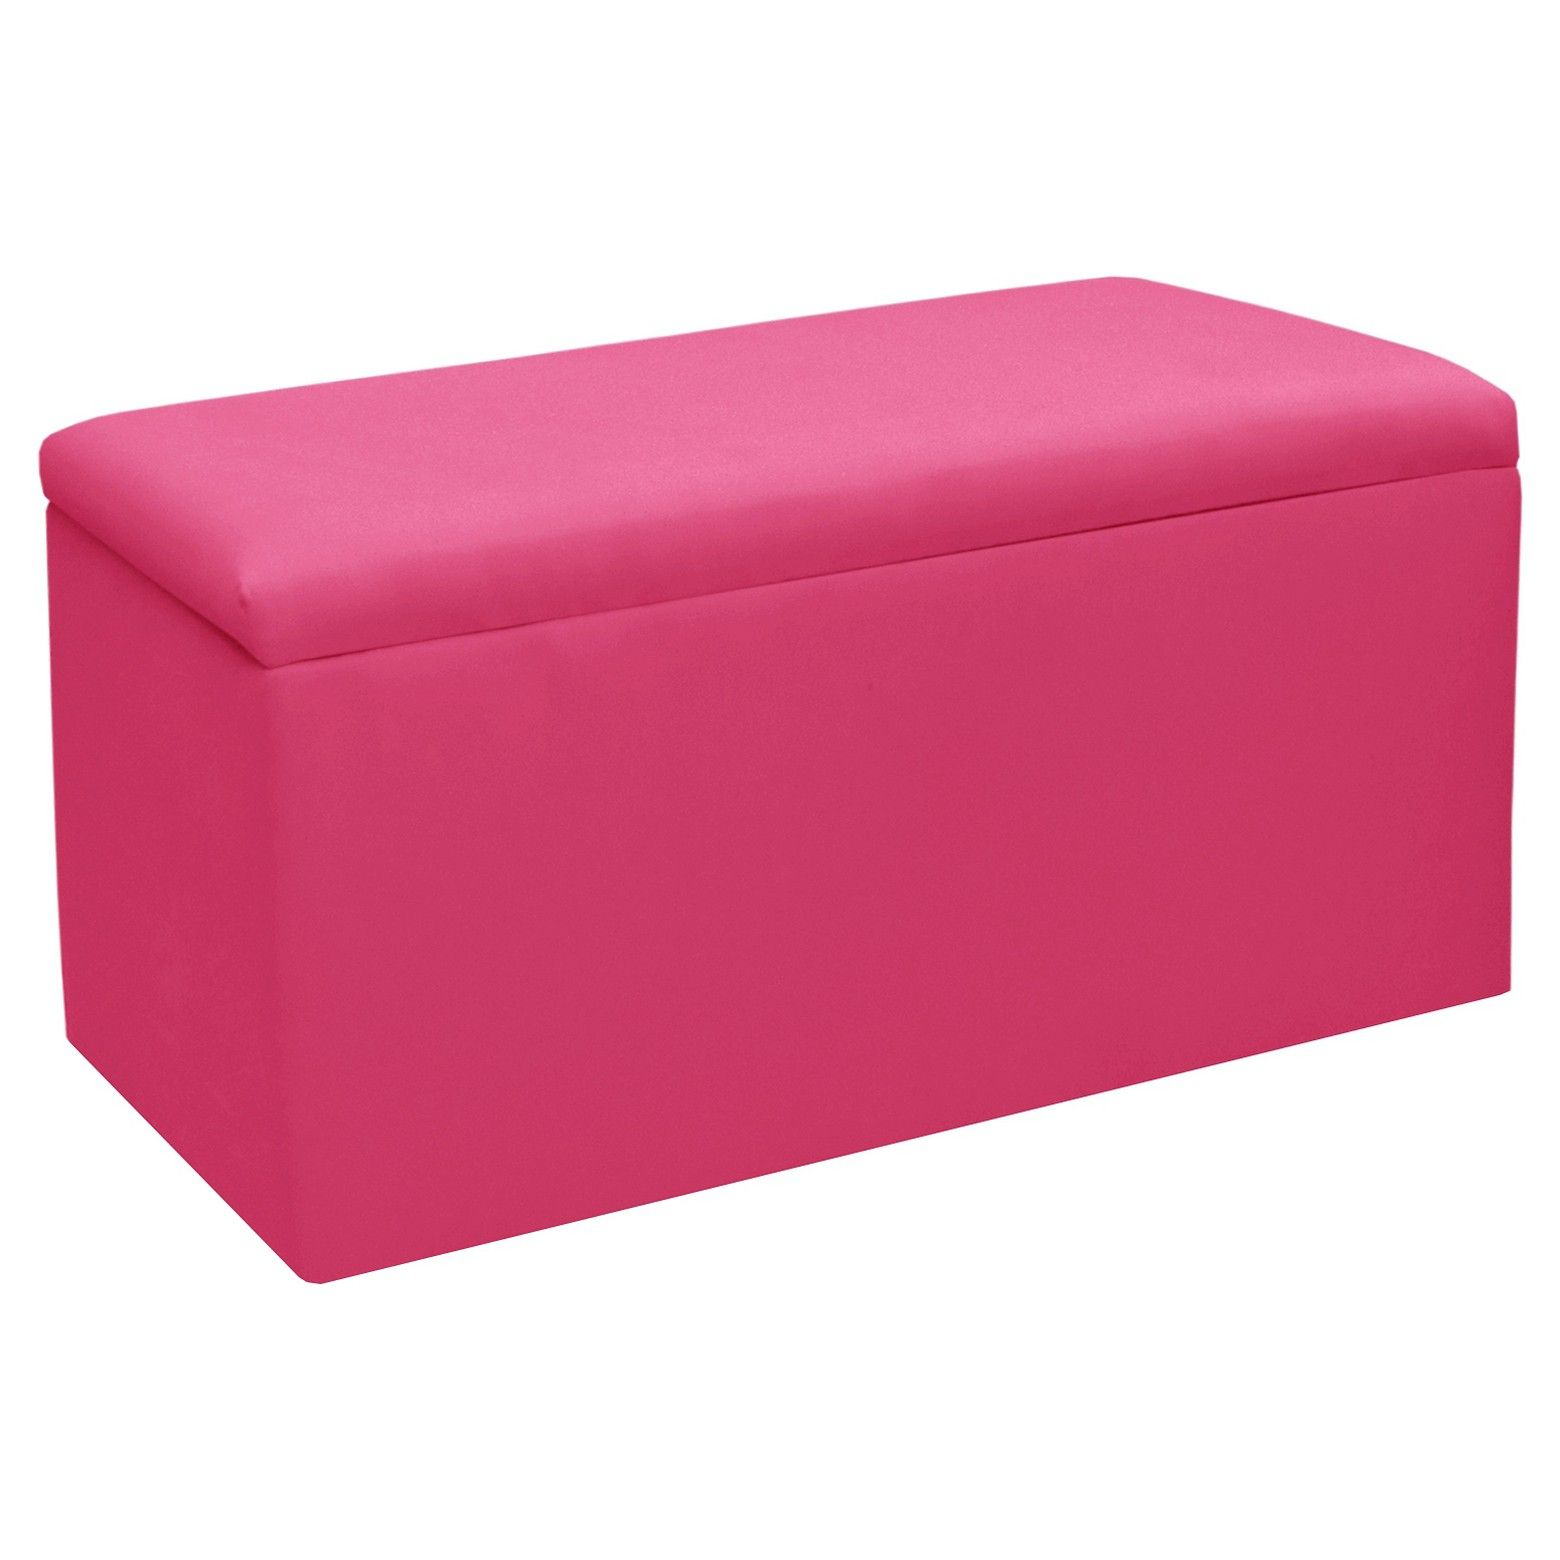 Kids Storage Ottoman Skyline Furniture Skyline Furniture Kids Storage Storage Furniture